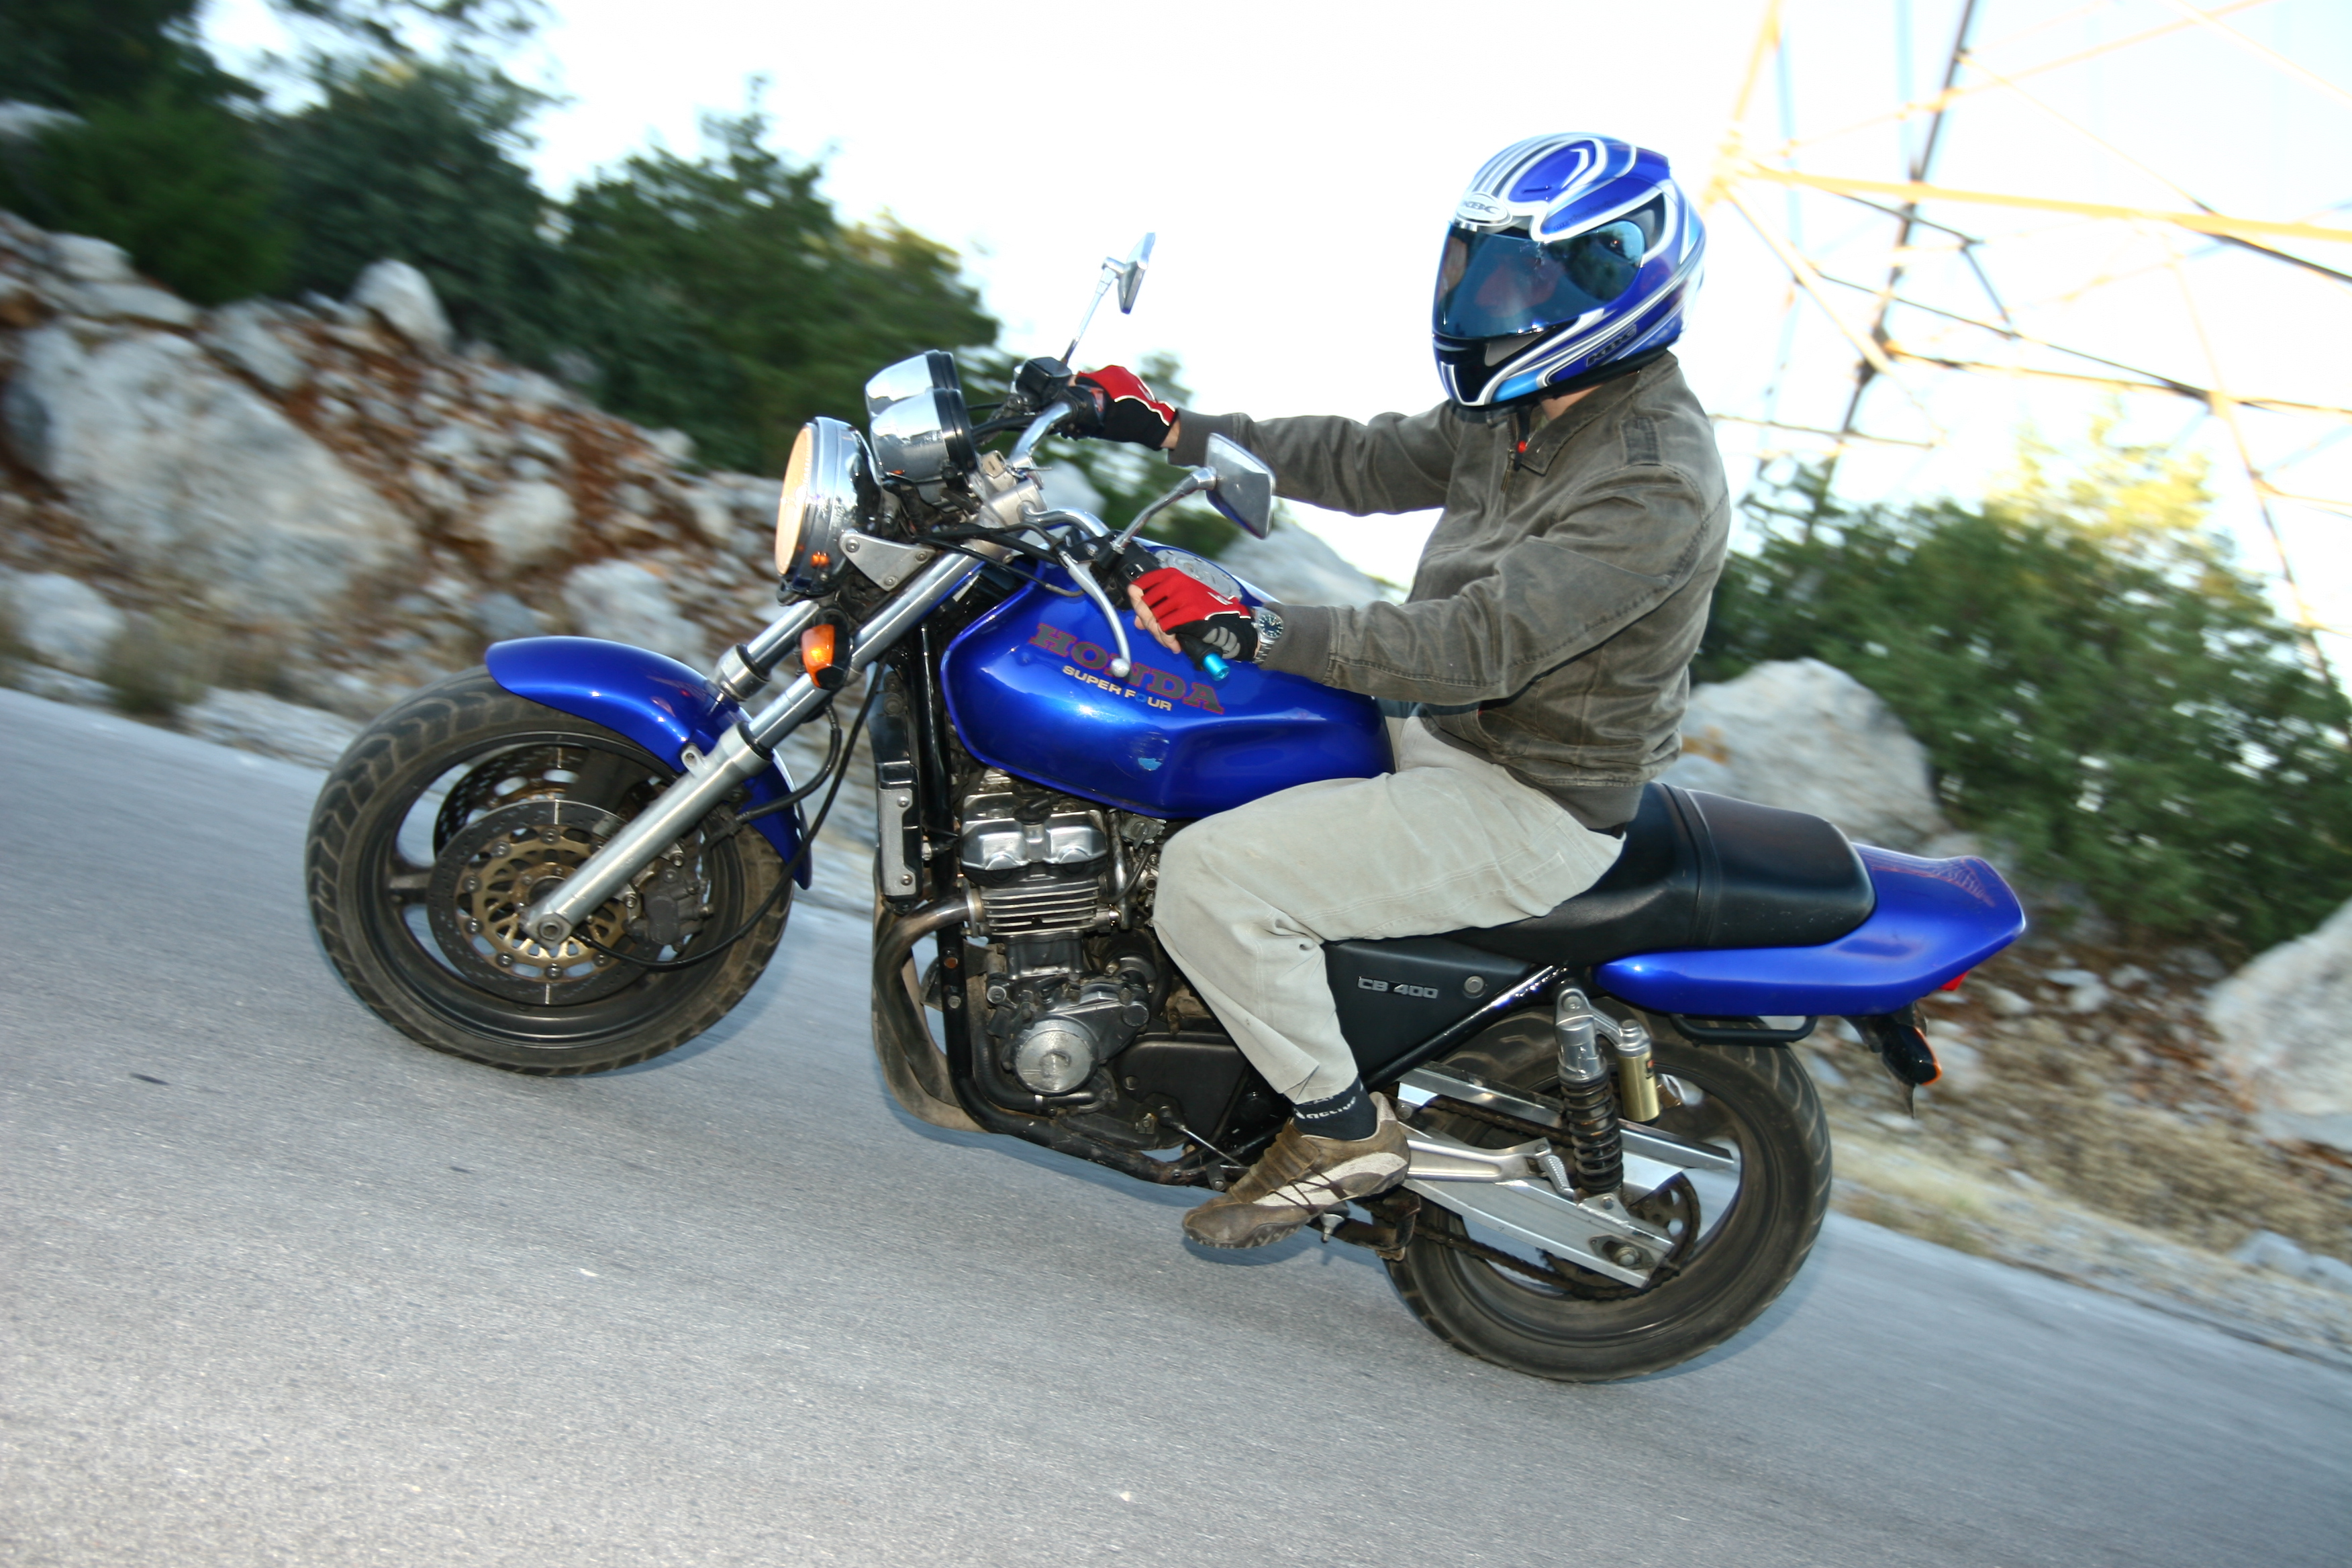 Honda CB400SF: photos and reviews. Motorcycle Specifications 70